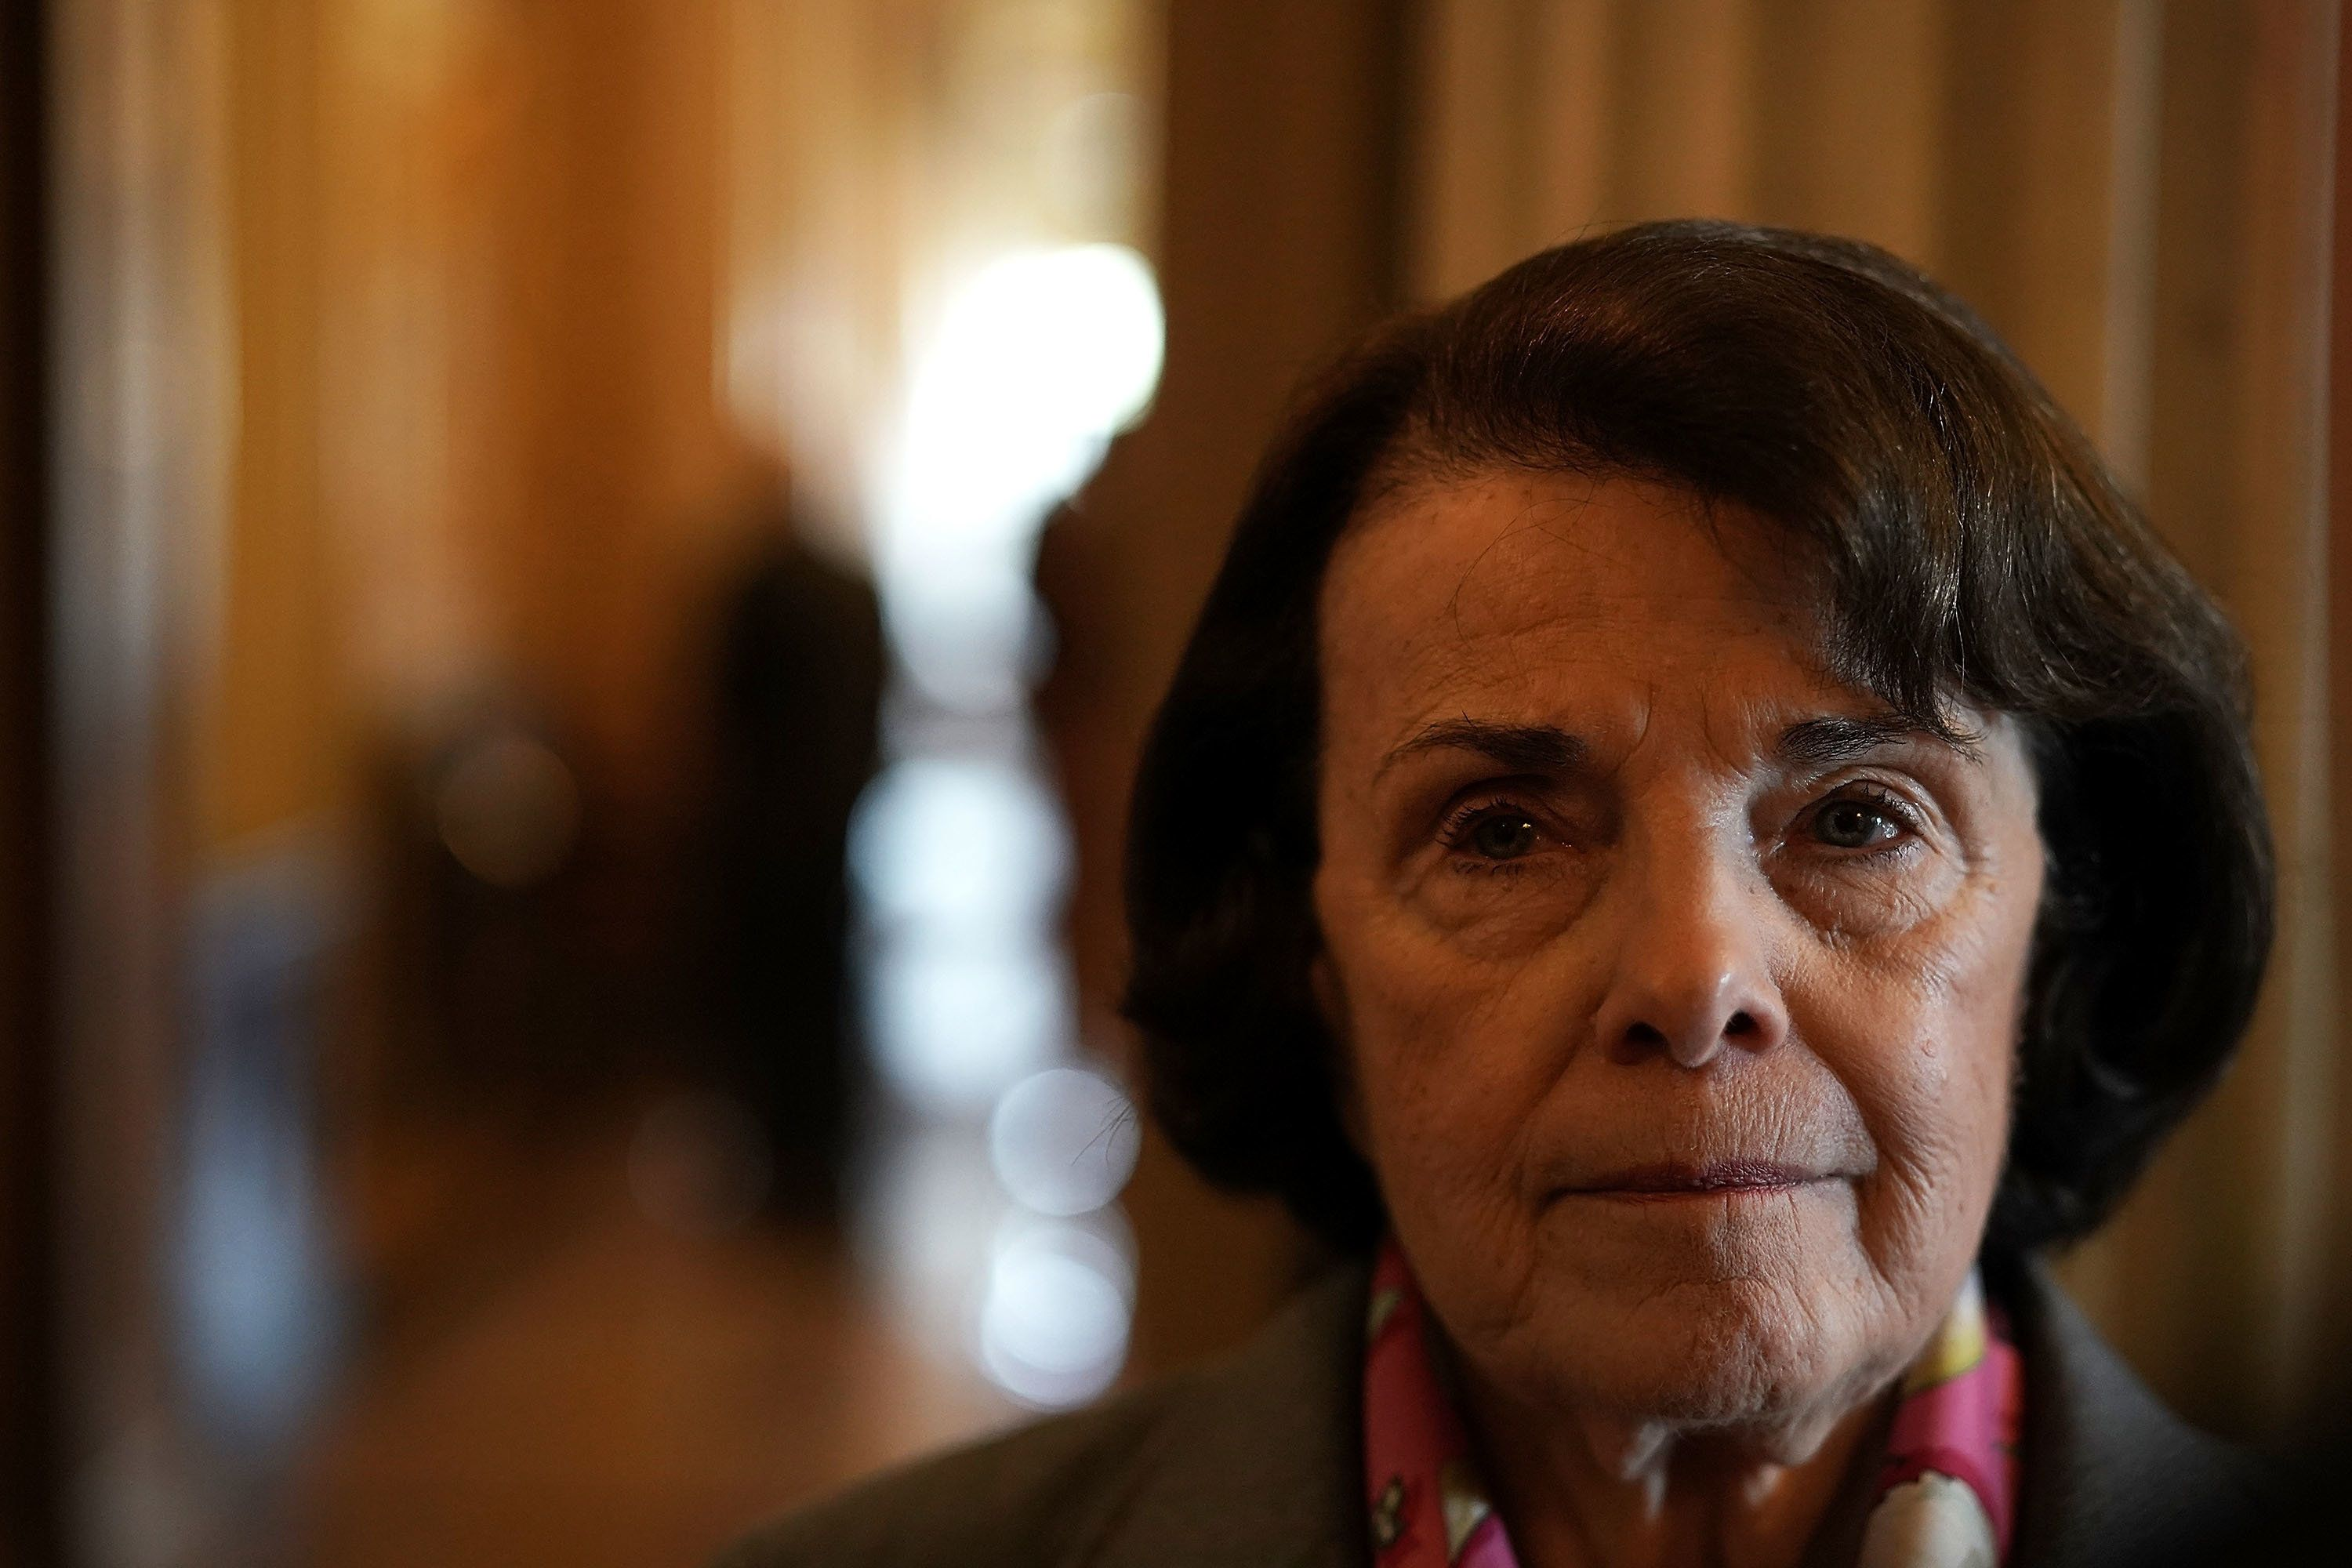 WASHINGTON, DC - FEBRUARY 15:  U.S. Sen. Dianne Feinstein (D-CA) speaks to members of the media prior to a number of votes at the Capitol February 15, 2018 in Washington, DC. A bipartisan DACA\boarder security deal has failed in the Senate, casting an uncertain future for the immigration bill.  (Photo by Alex Wong/Getty Images)